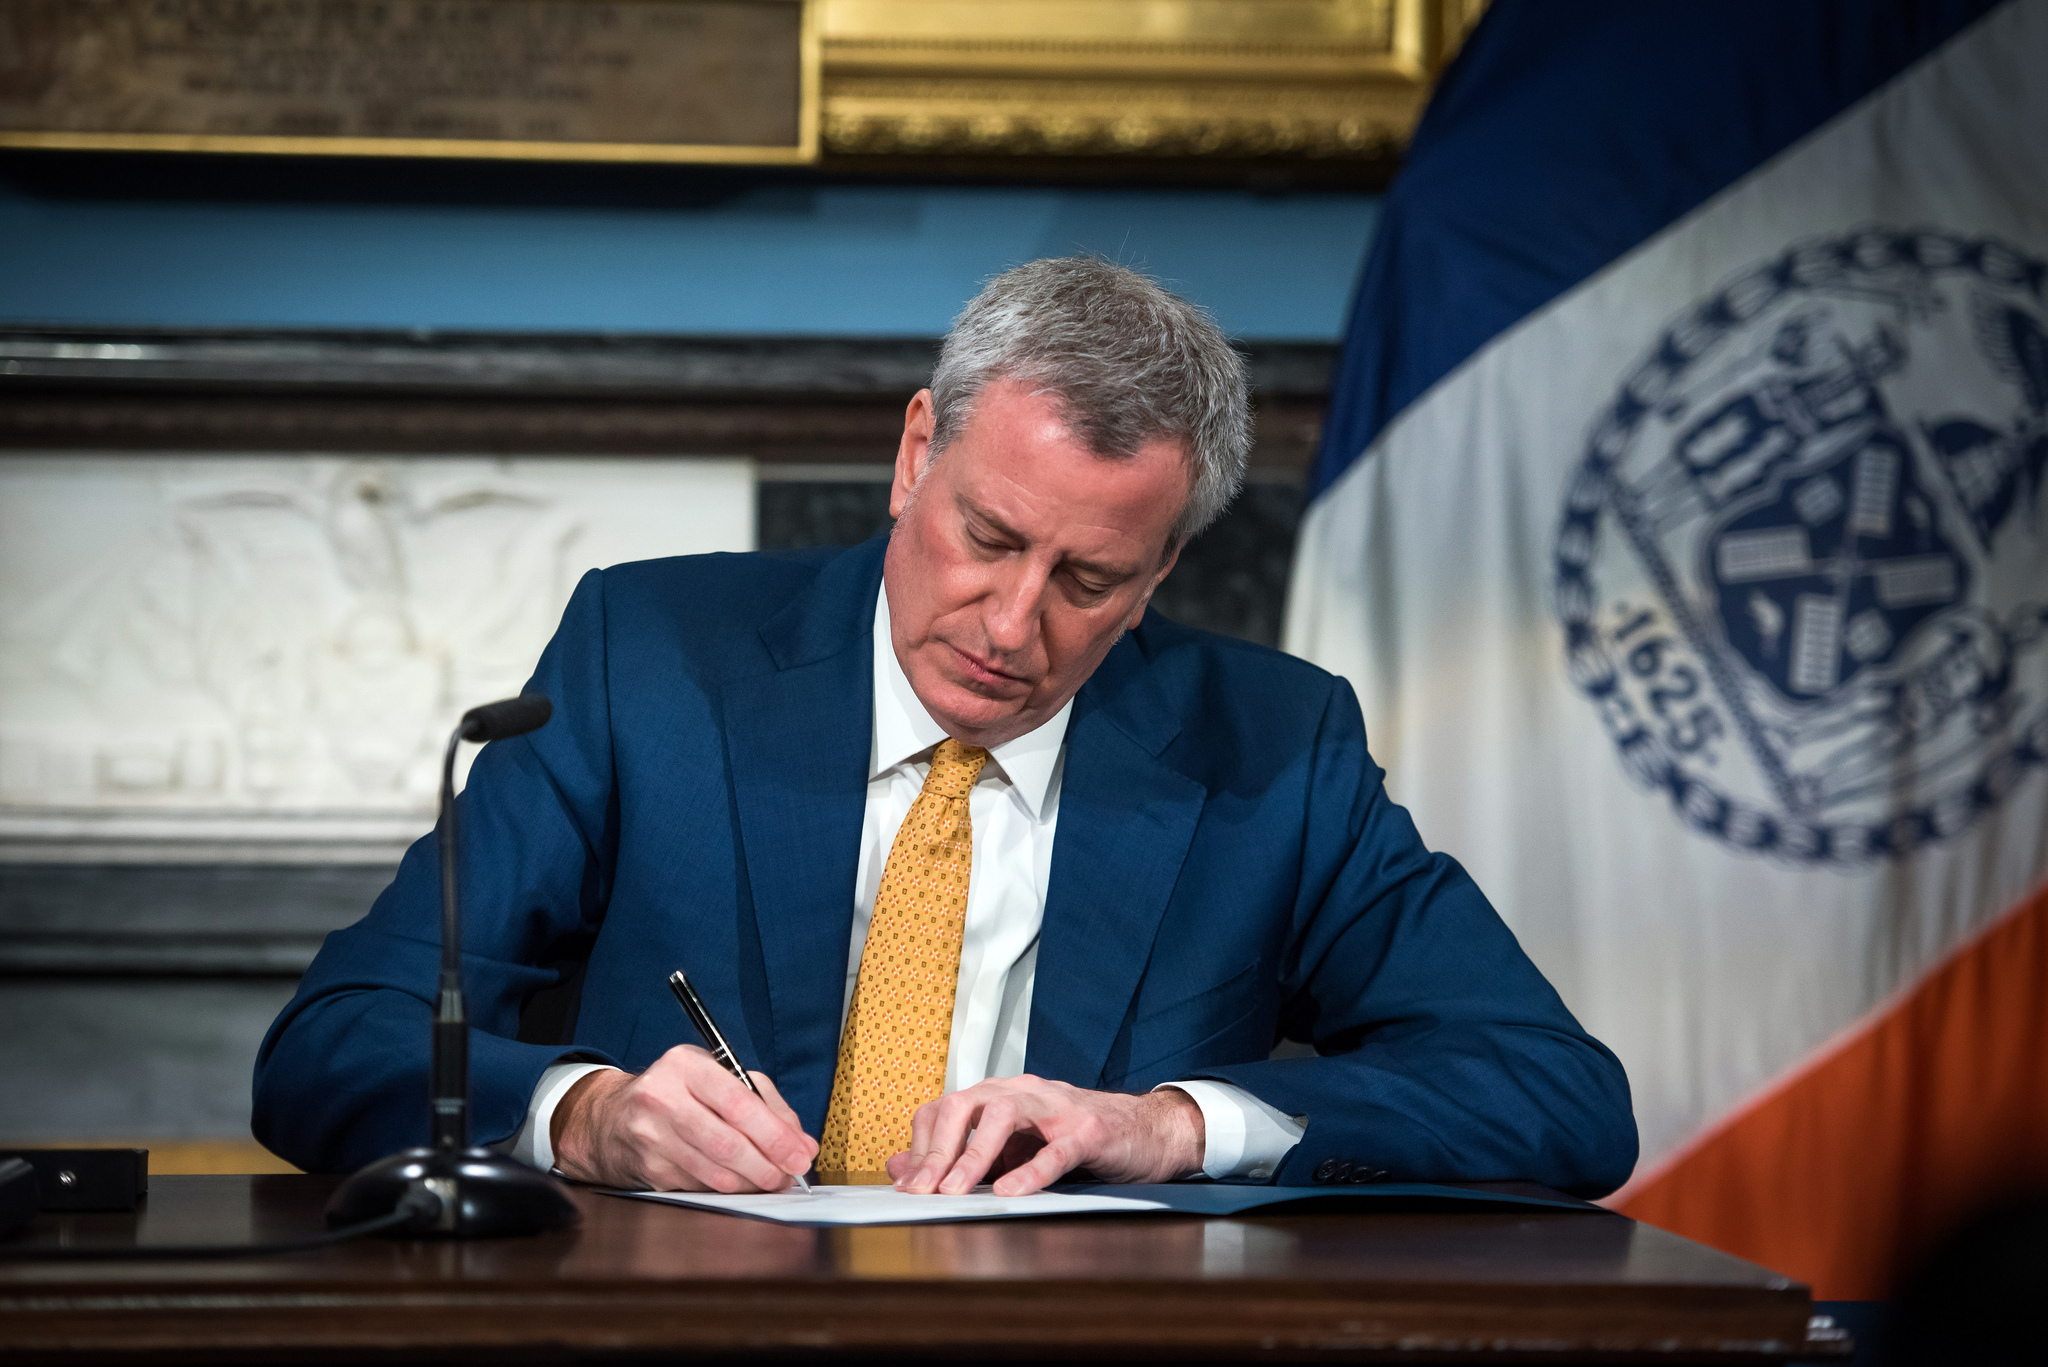 Mayor Bill de Blasio signs a campaign finance bill at City Hall on Jan. 2. At the same ceremony, he signed a proclamation declaring Feb. 26 as the date for the special election for public advocate. Photo via Flickr/NYCMayorsOffice